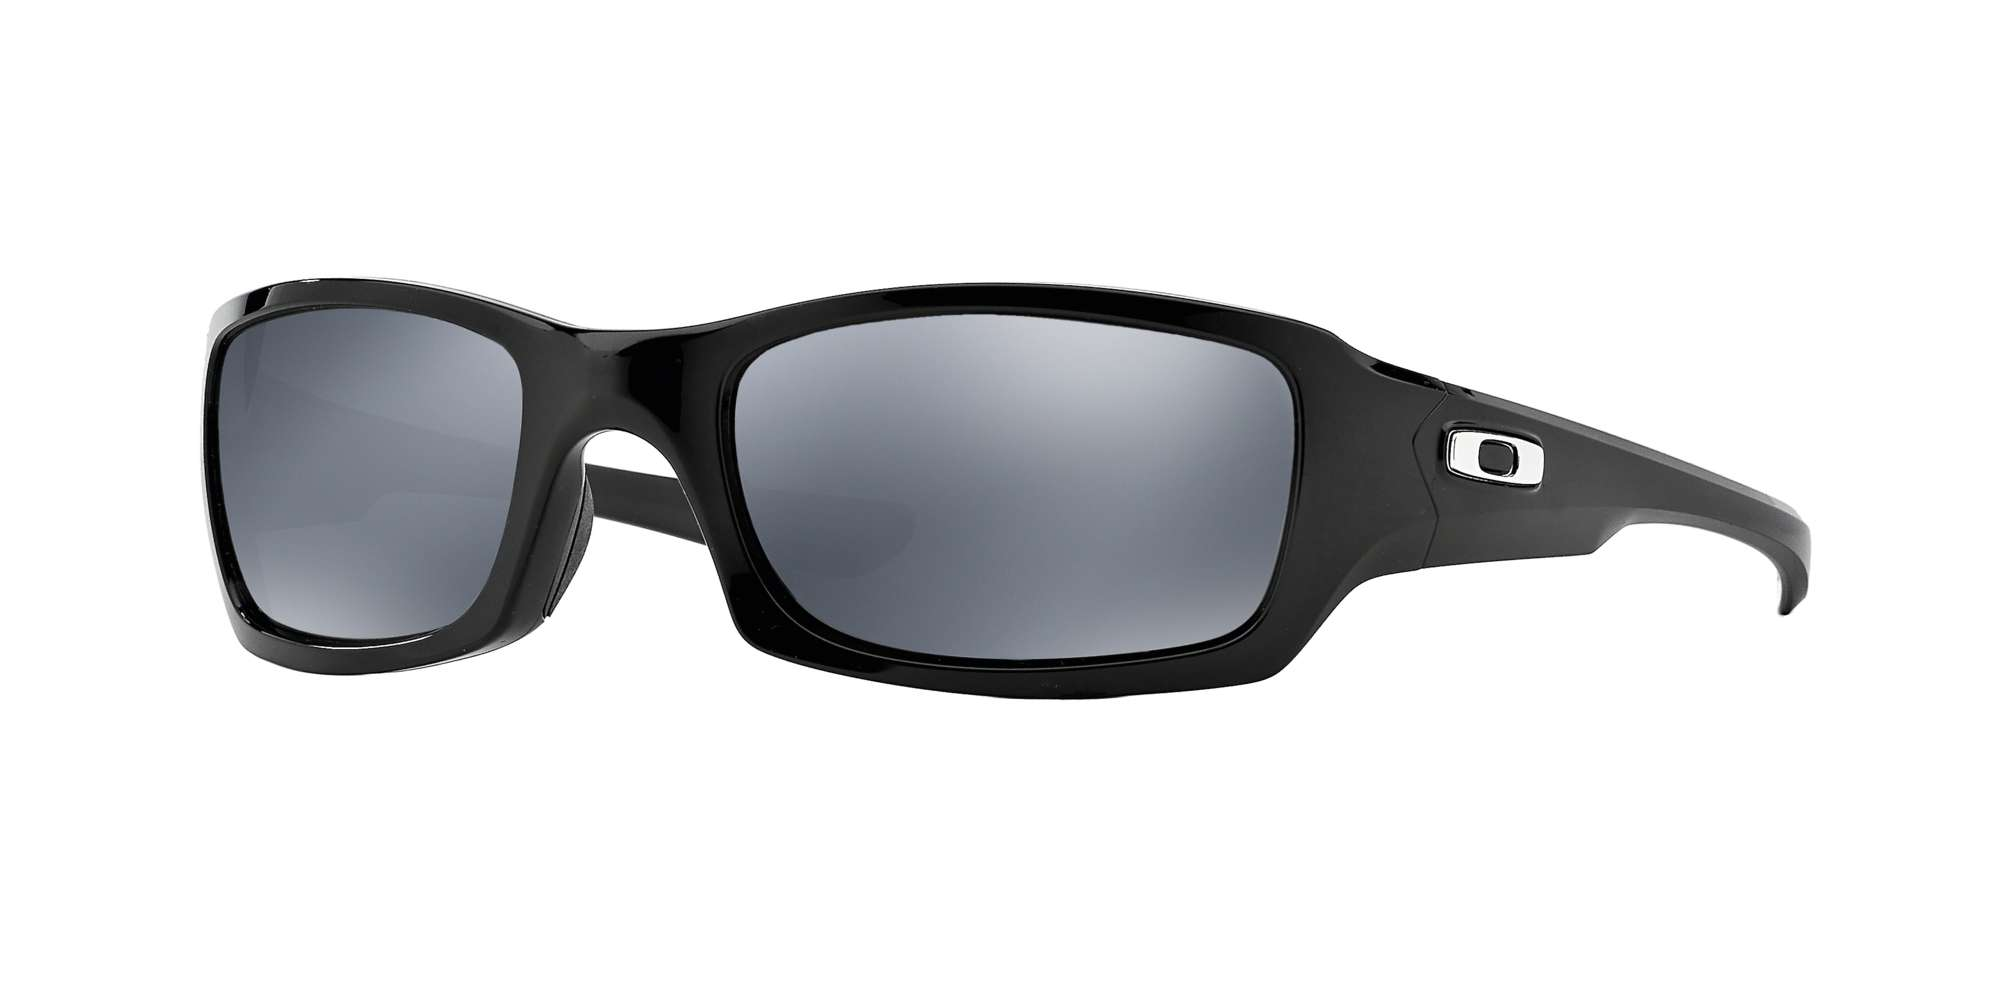 POLISHED BLACK / BLACK IRIDIUM POLARIZED lenses